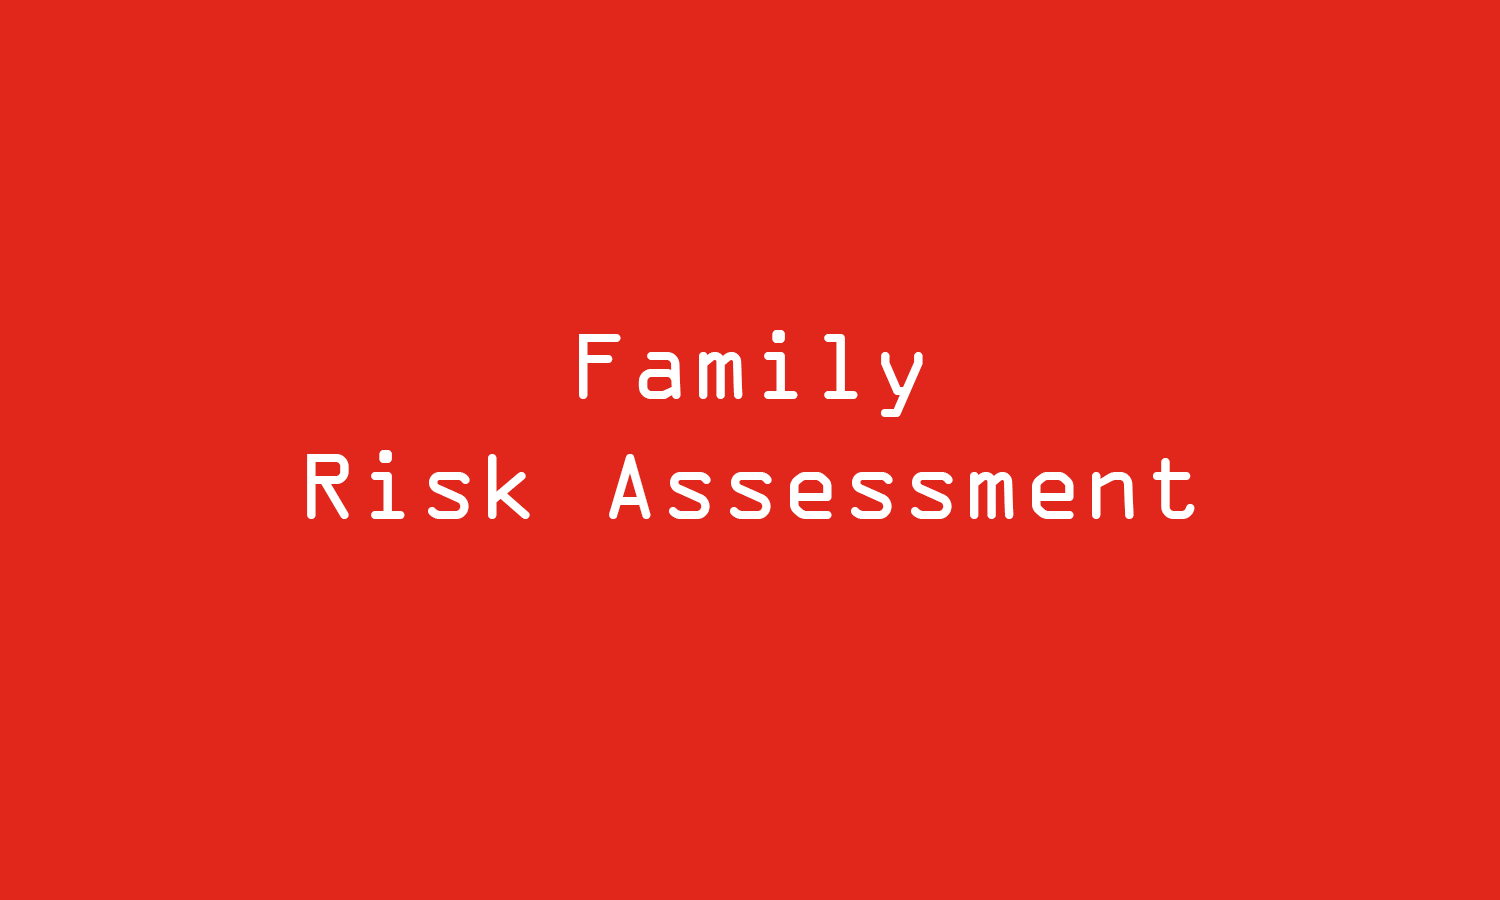 Family risk assessment red re aligned.png